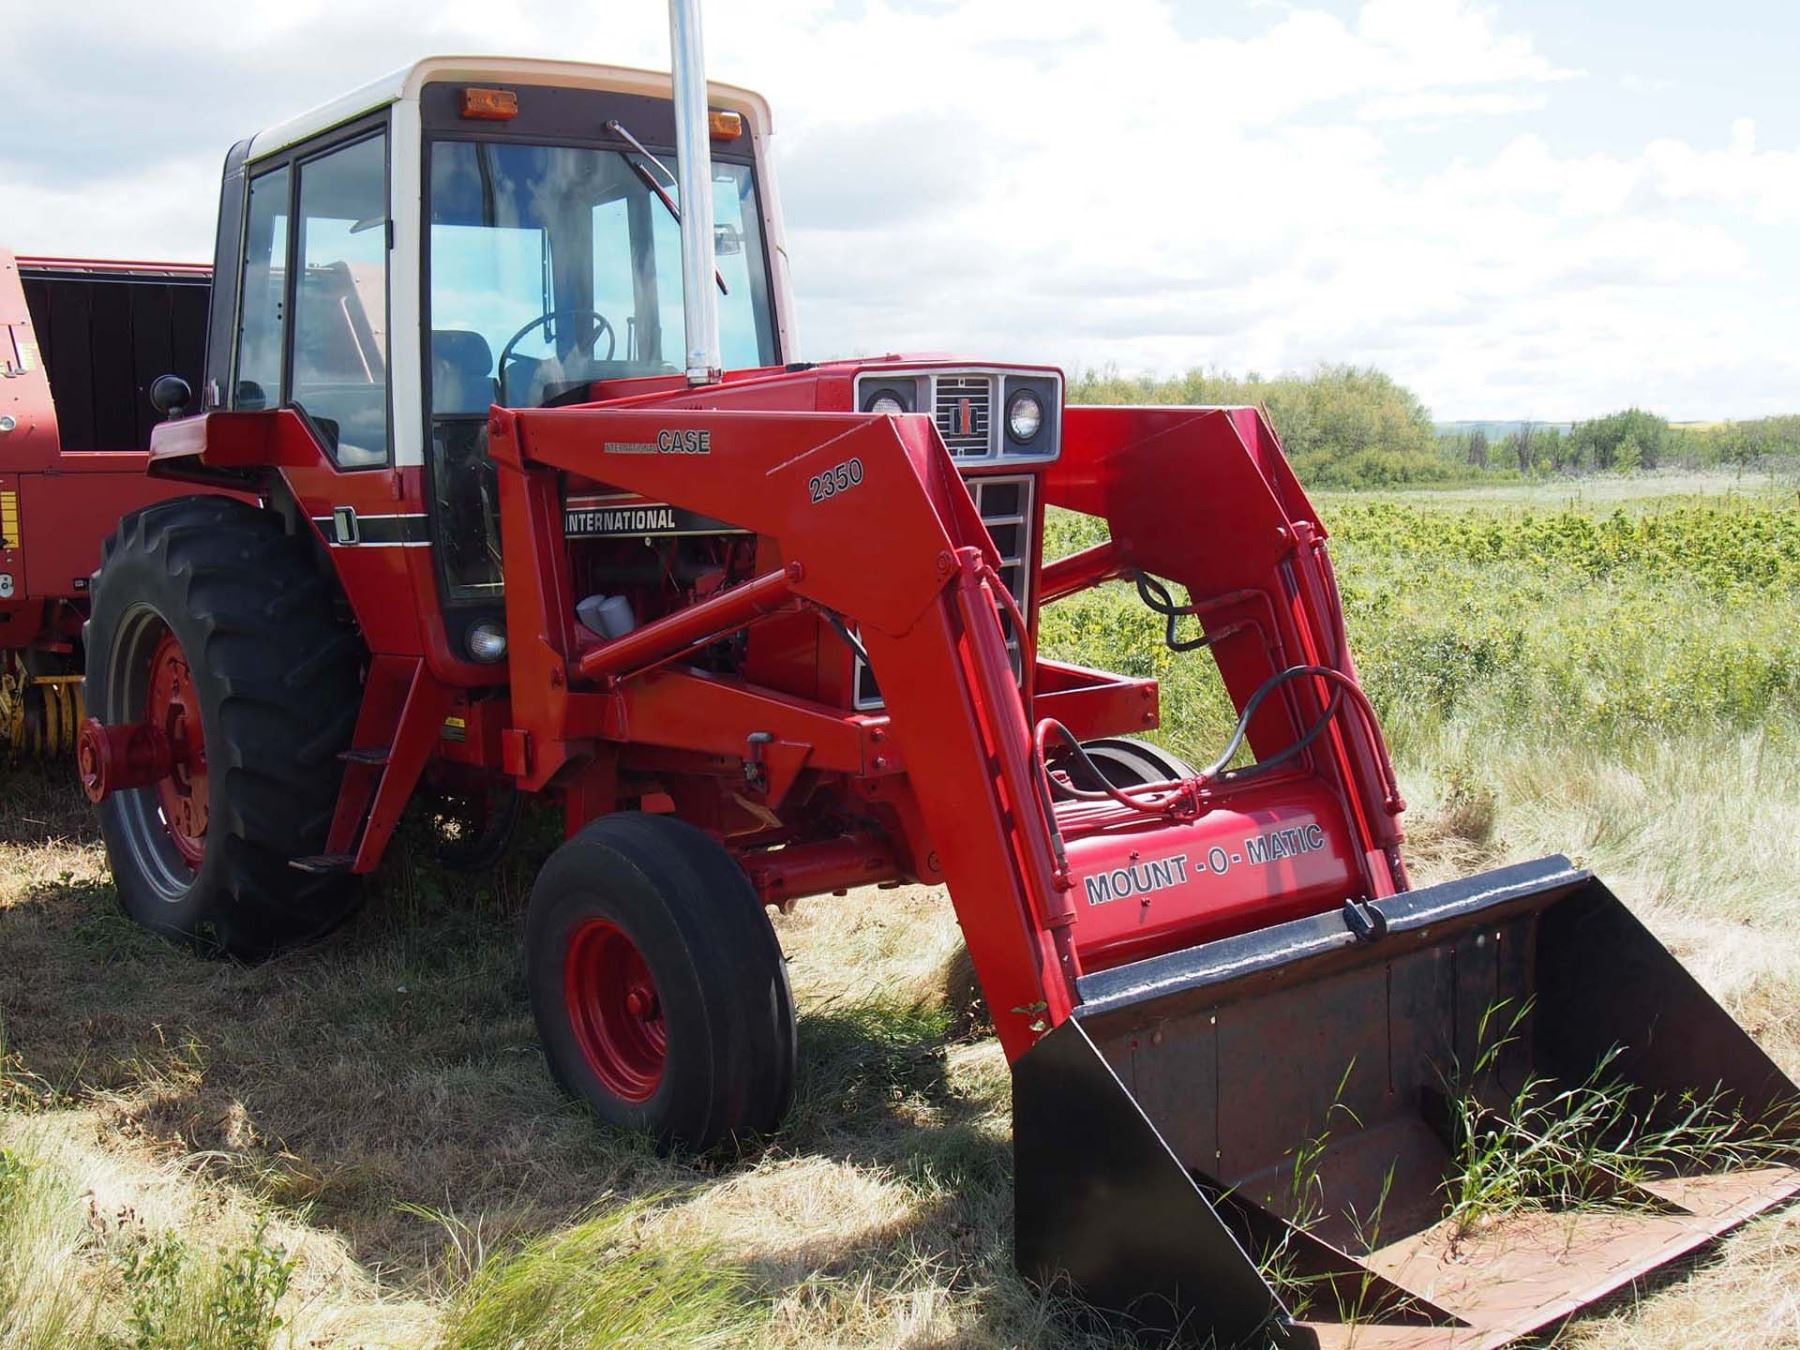 Image 1 : 1981 International 1086 Tractor 6075 Hours. S#2610193053367, 2350  Case ...